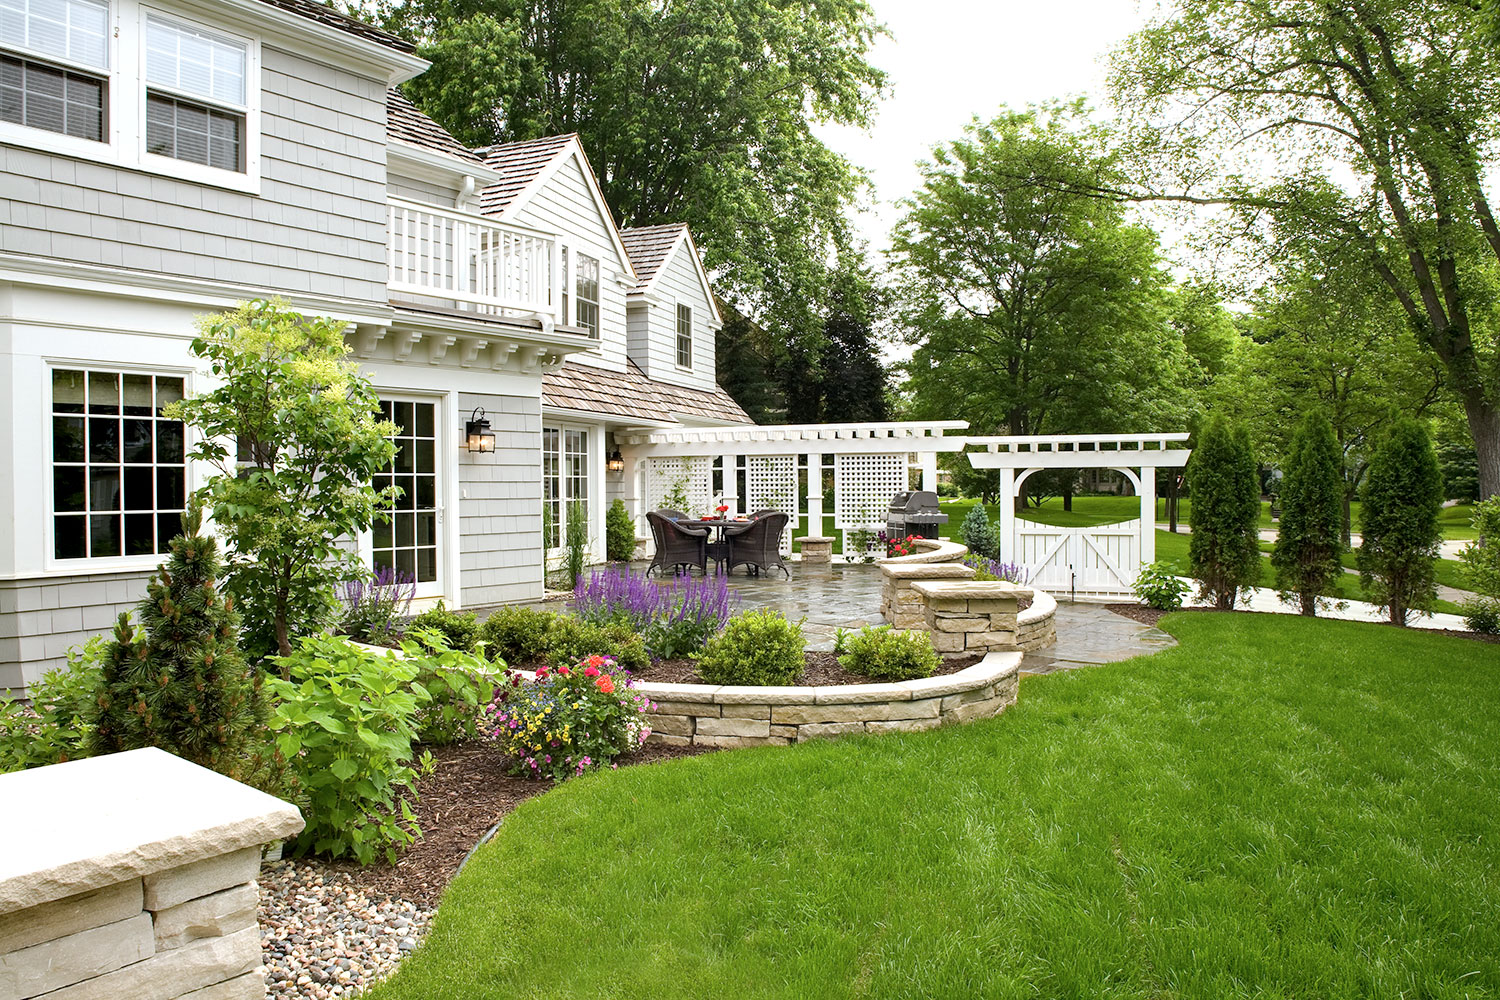 Edina MN Sideyard Landscaping with Patio, Chilton Wall, White Arbor and Gate